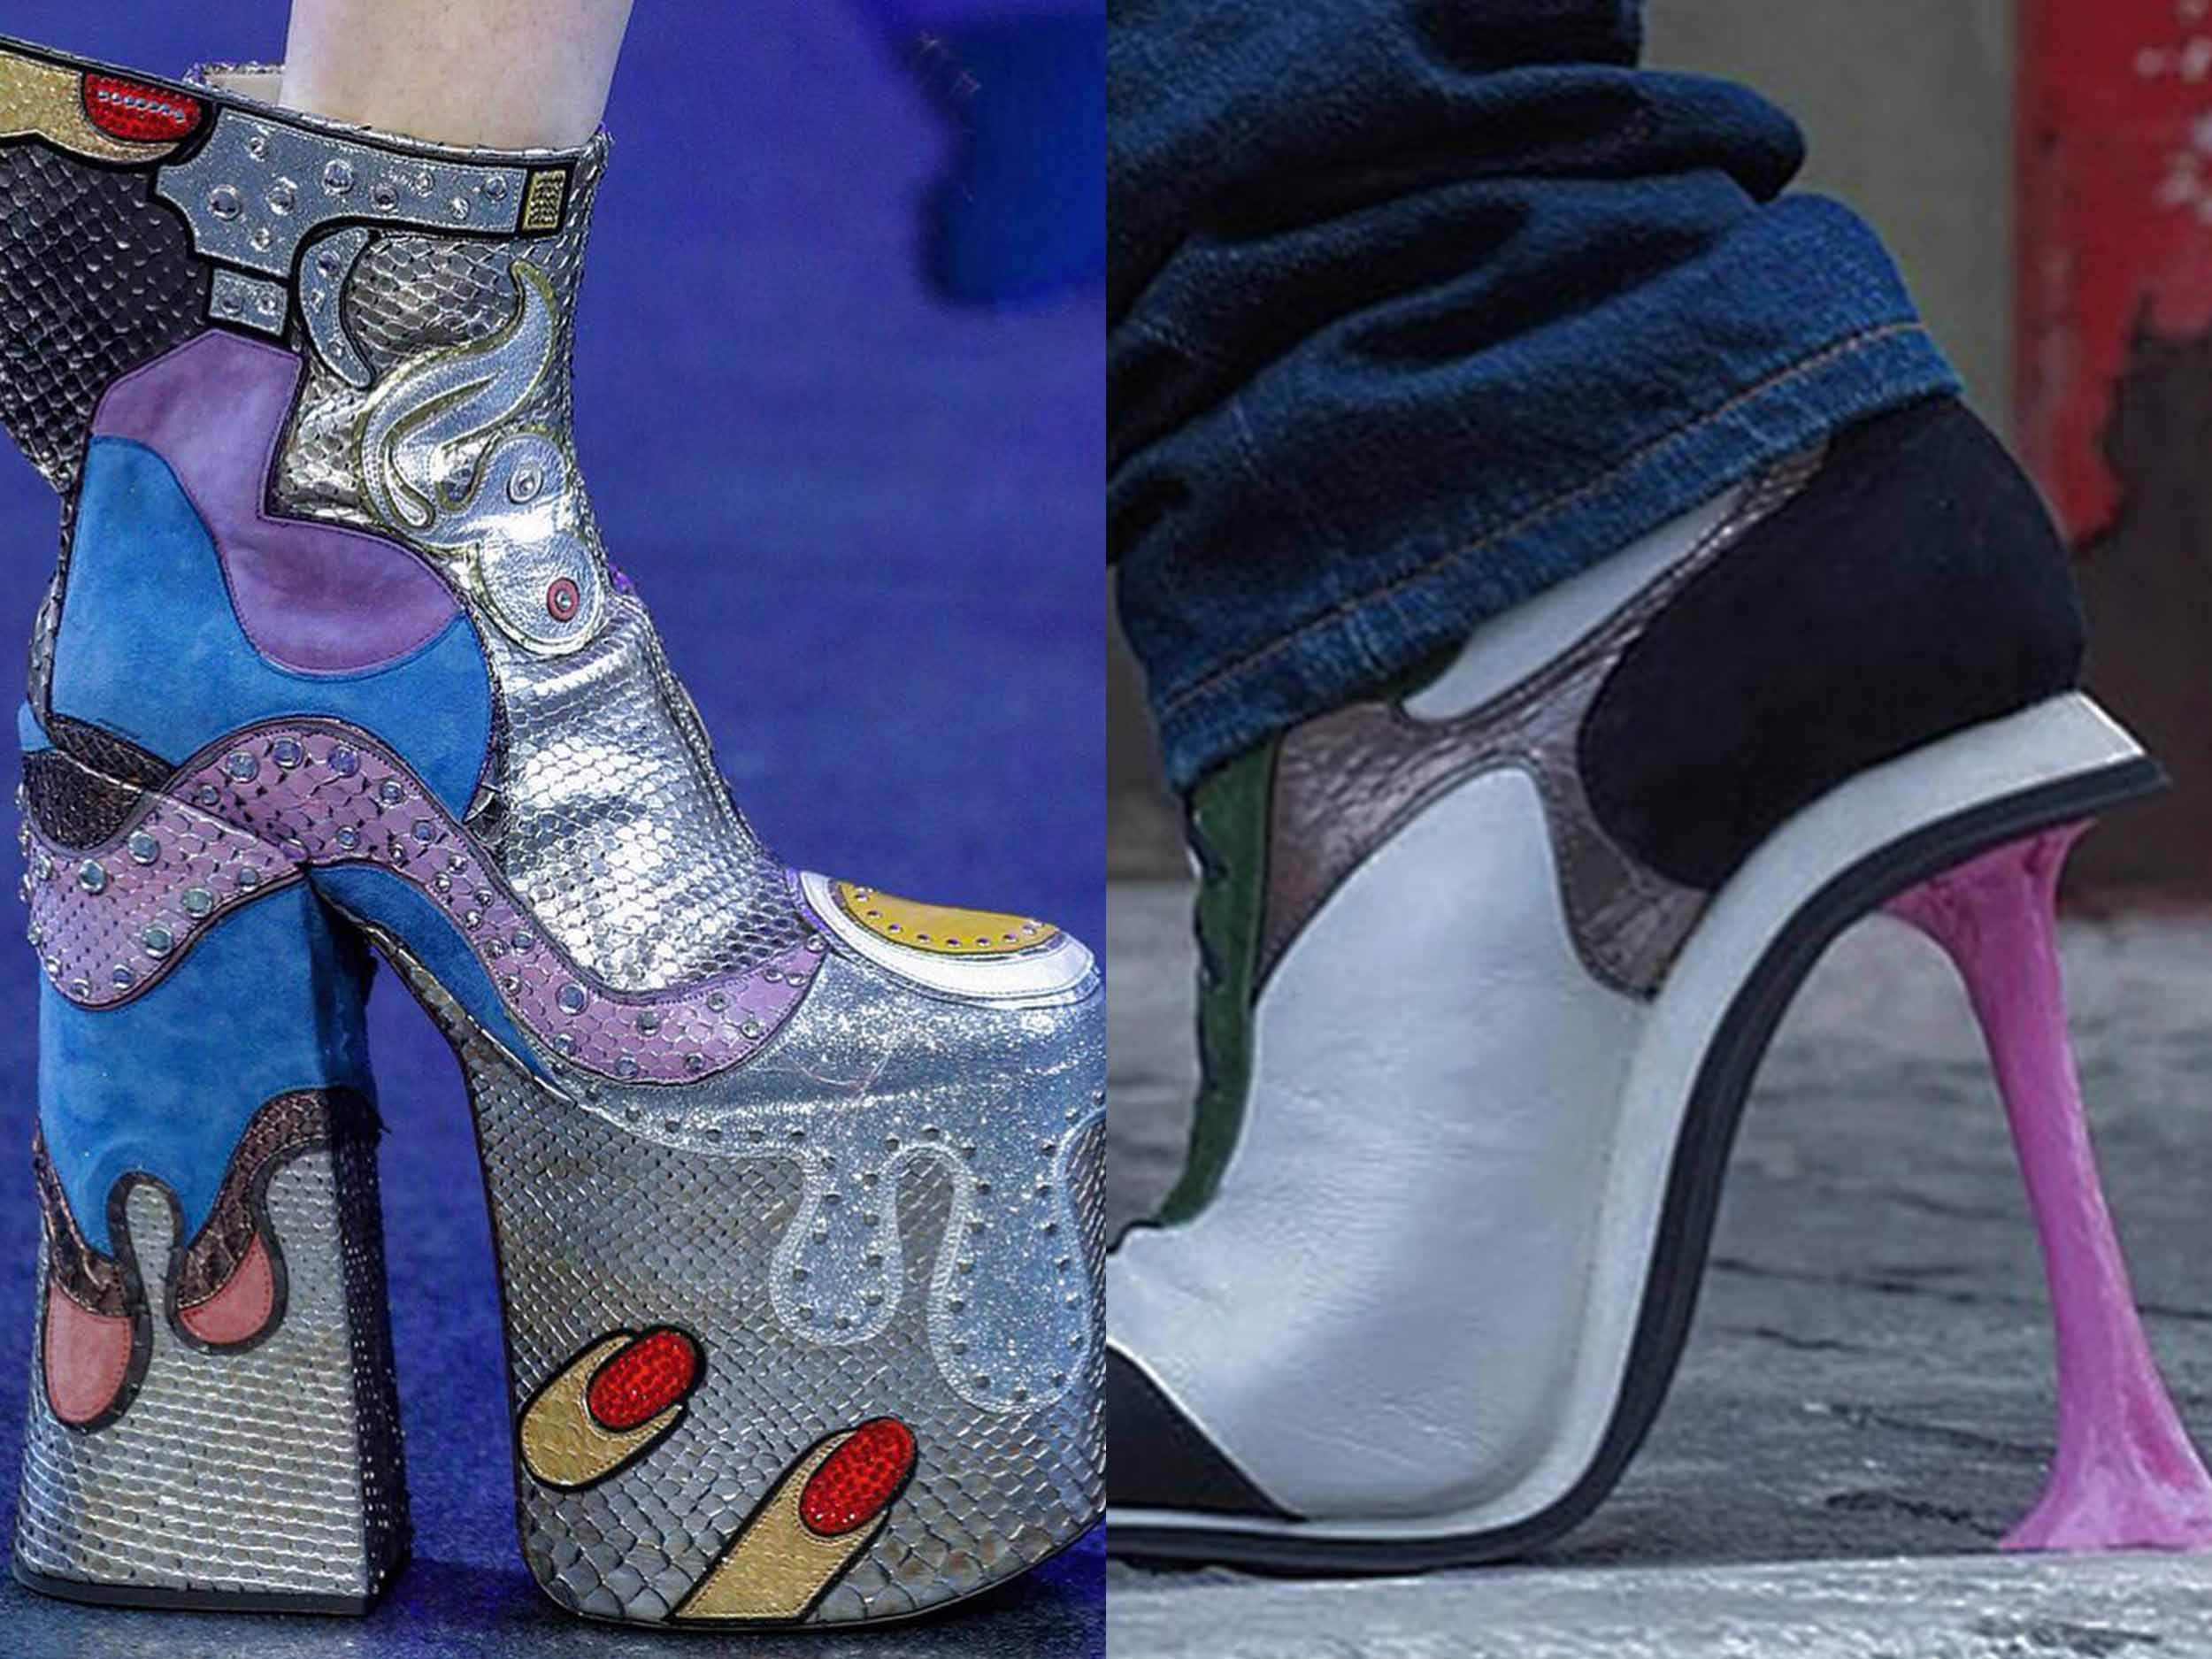 @Larslala's masterclass in fashion footwear: why these insane shoes are worth every blister